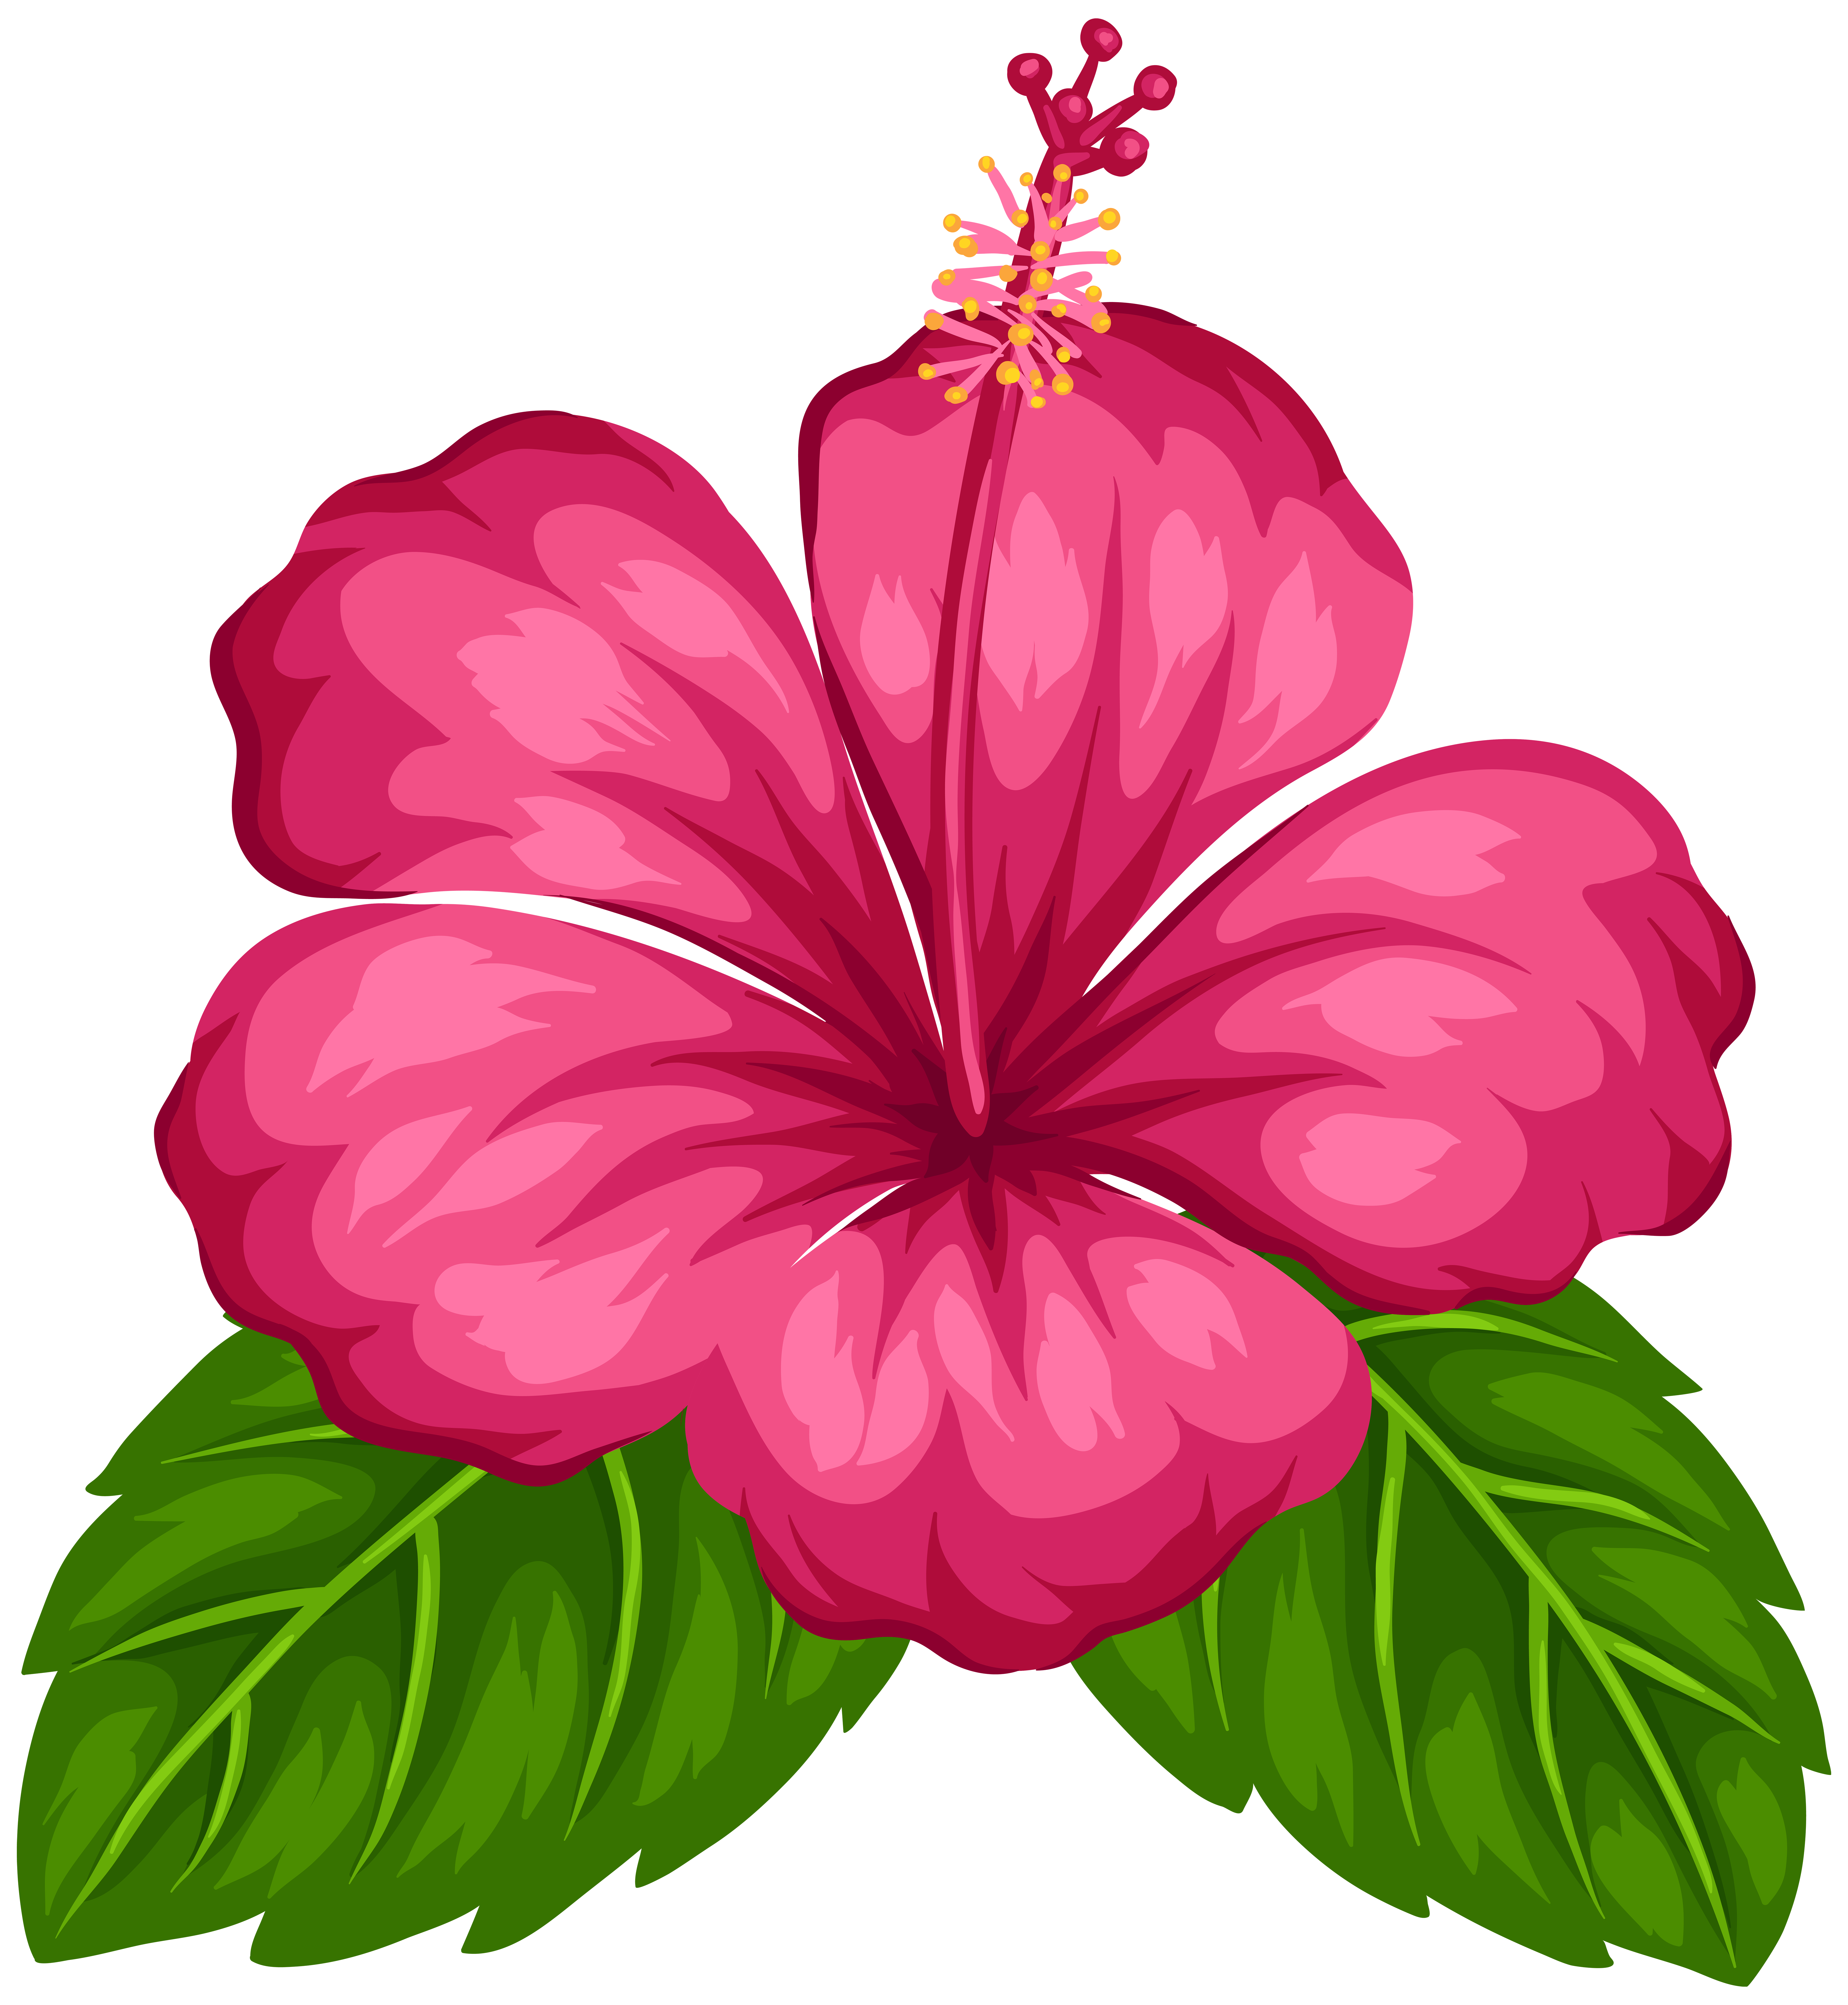 Png clipart images vector freeuse library Exotic Flower PNG Clip Art - Best WEB Clipart vector freeuse library